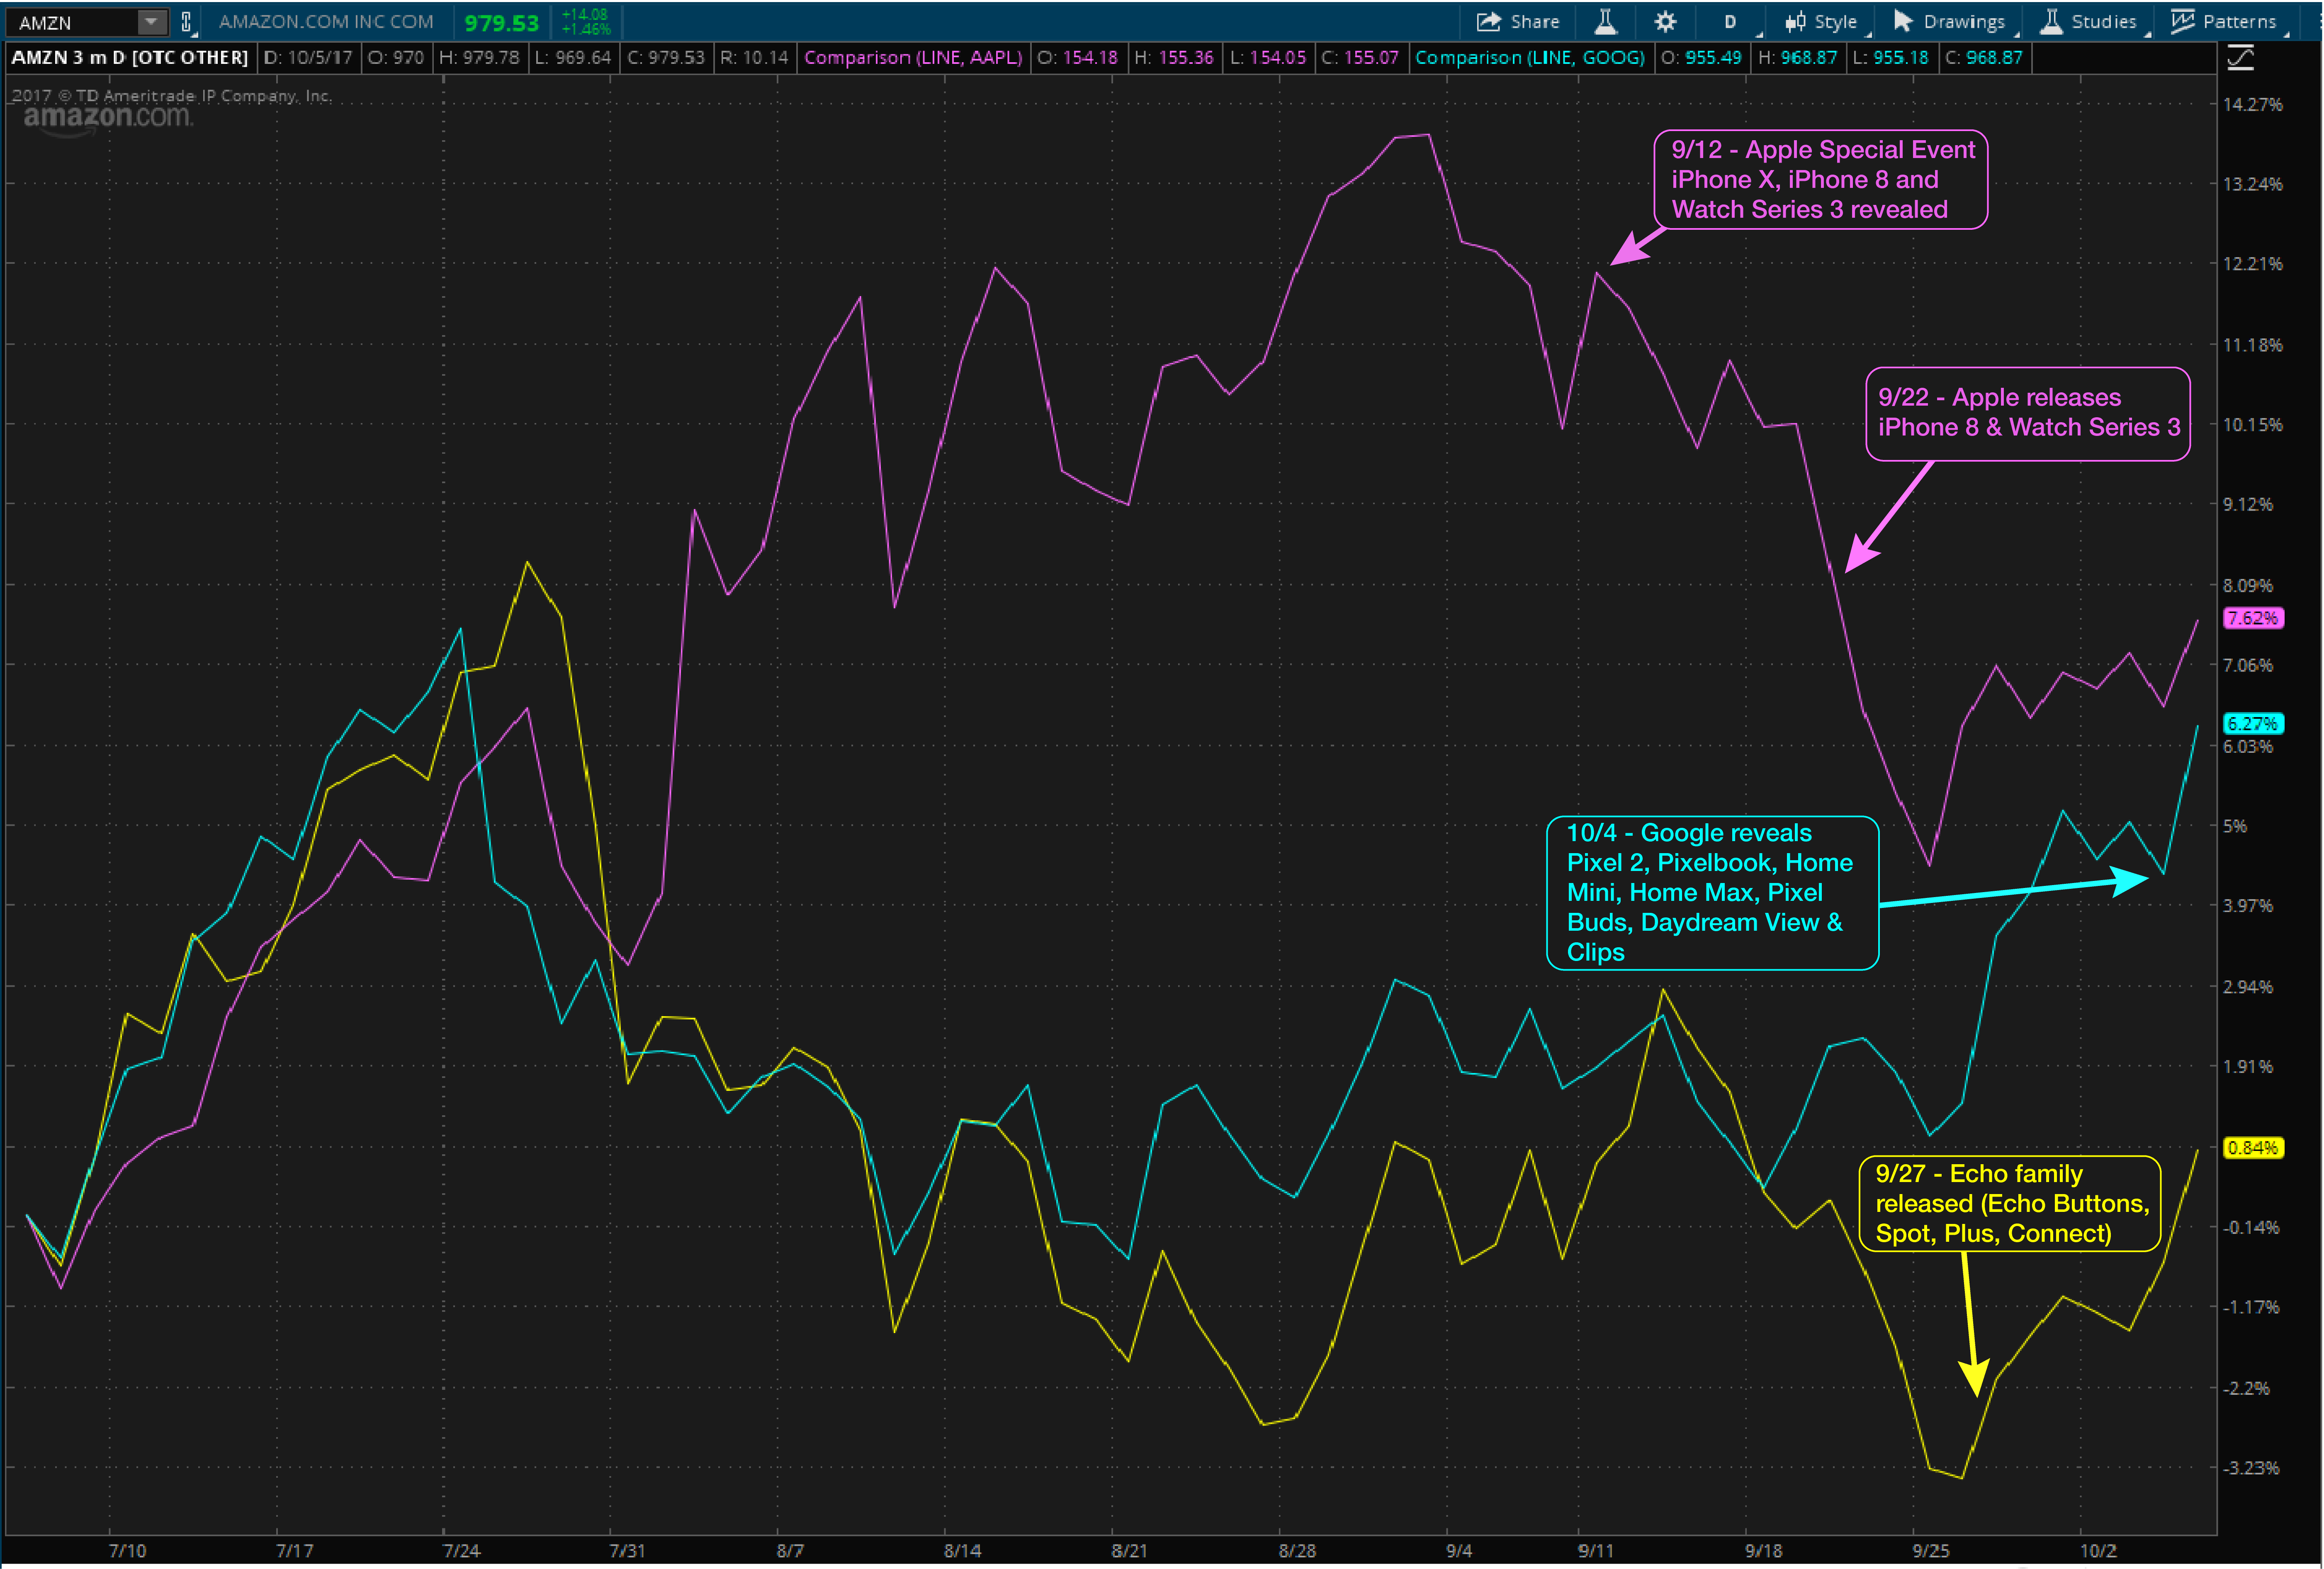 Thinkorswim chart showing Apple, Amazon, Alphabet stocks and the price that